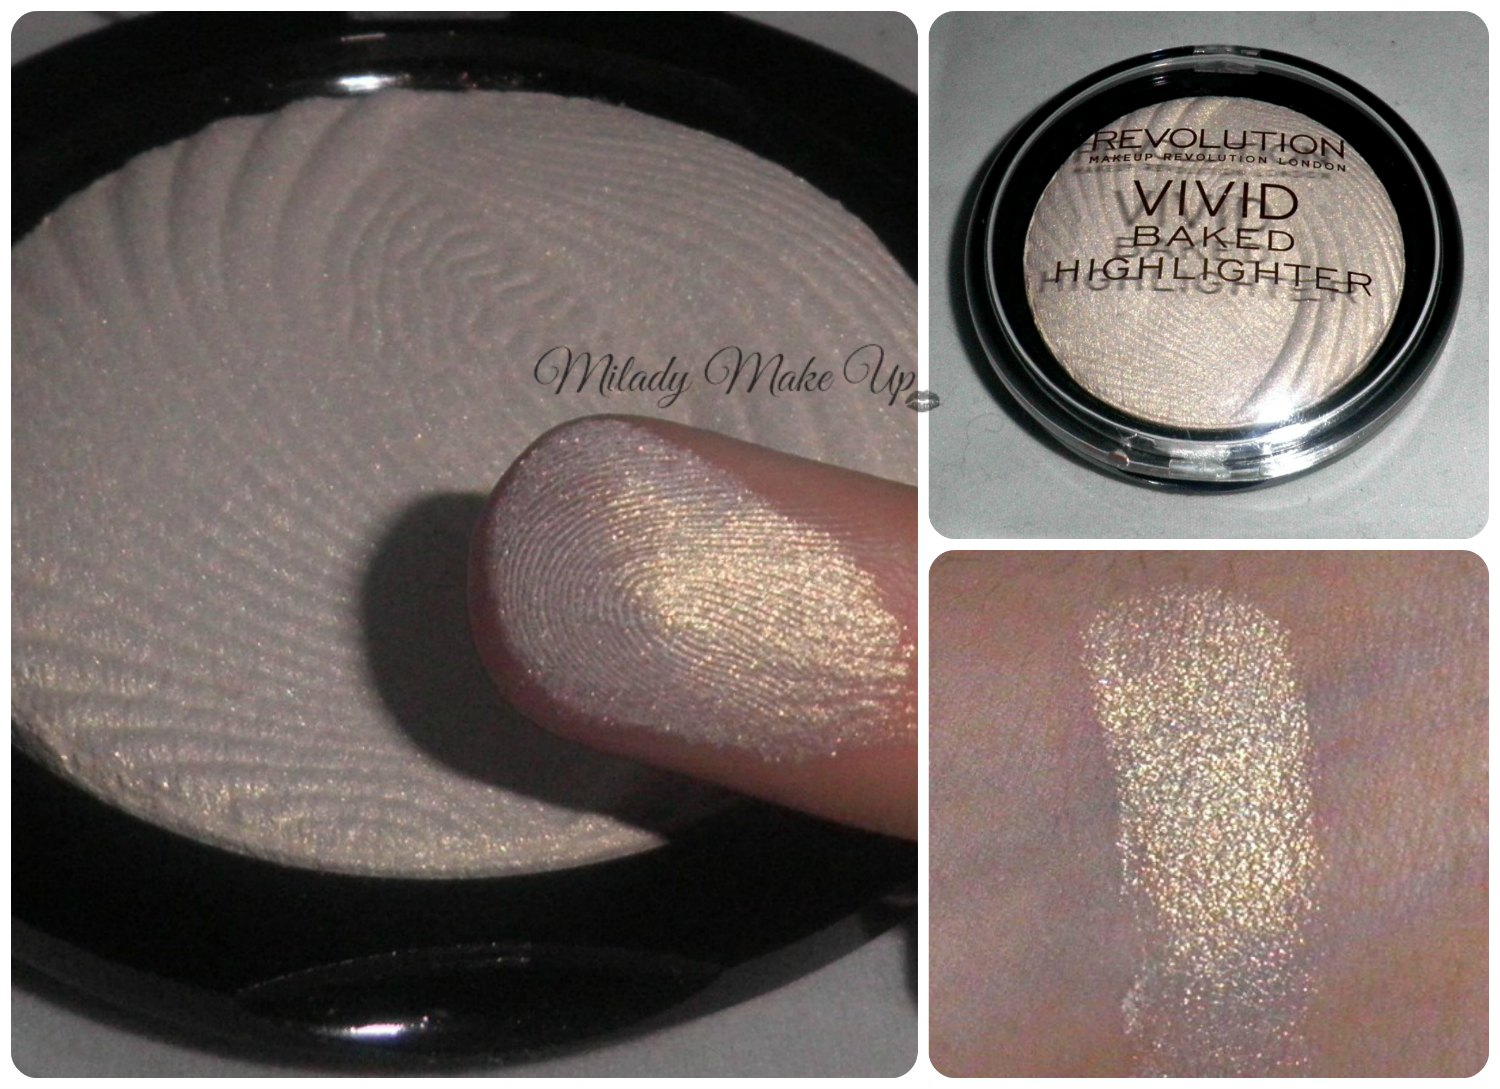 Makeup Revolution Iluminador highlighter swatch golden lights